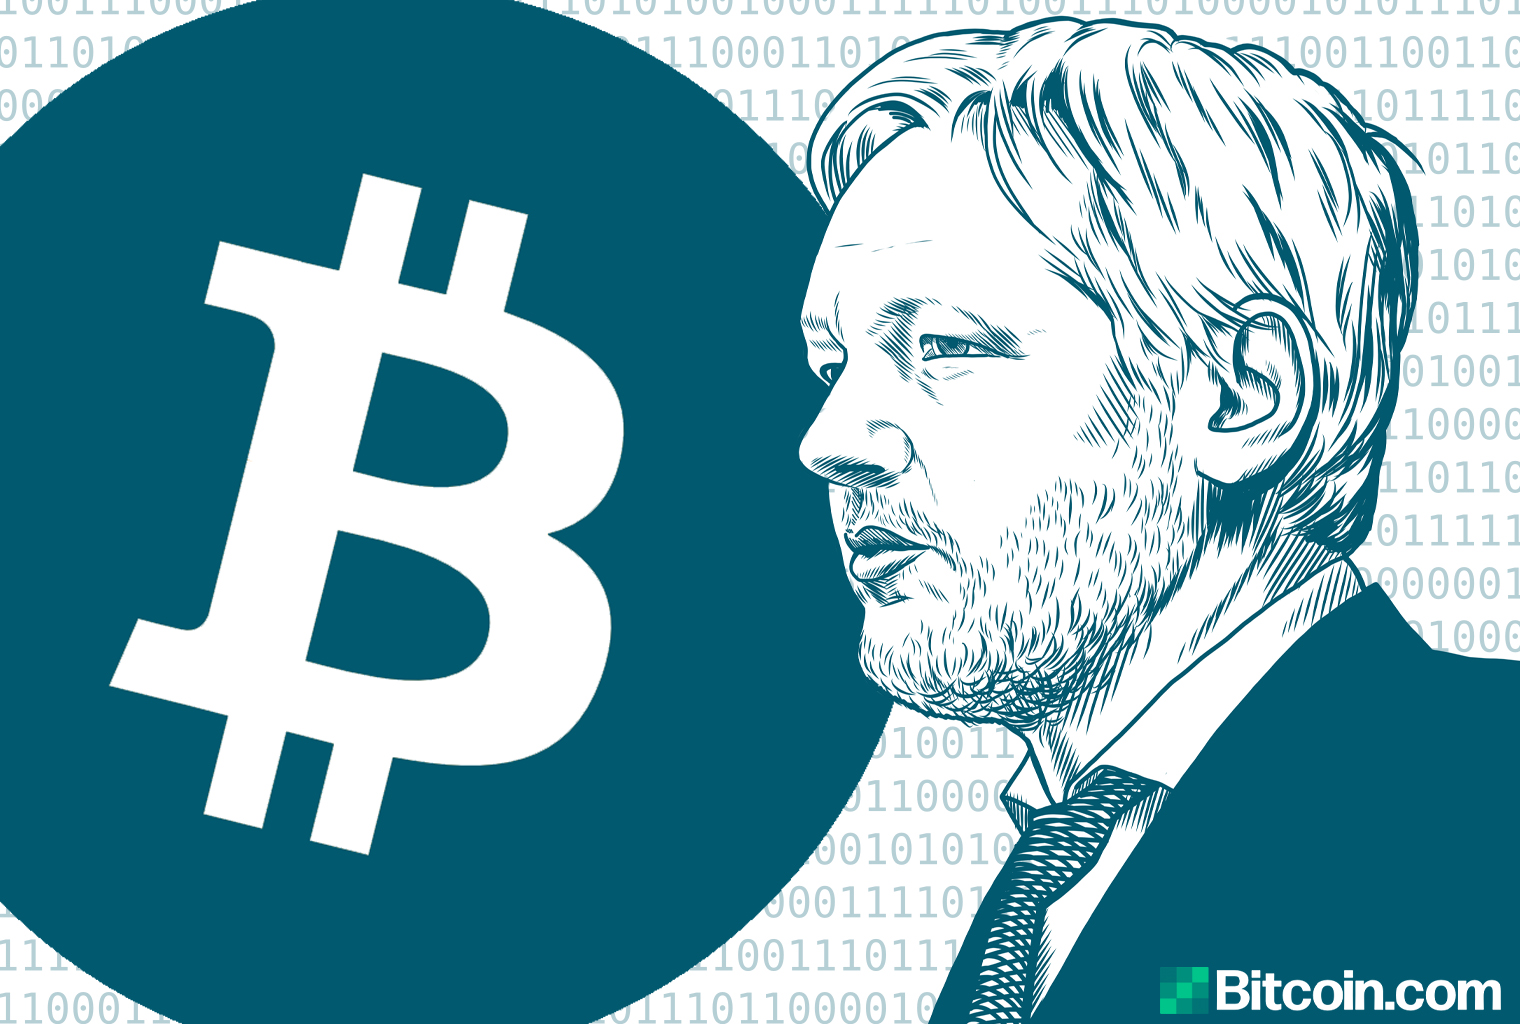 Wikileaks Gathers $37M in BTC Since 2010 - Over $400K Sent After Julian Assange's Arrest